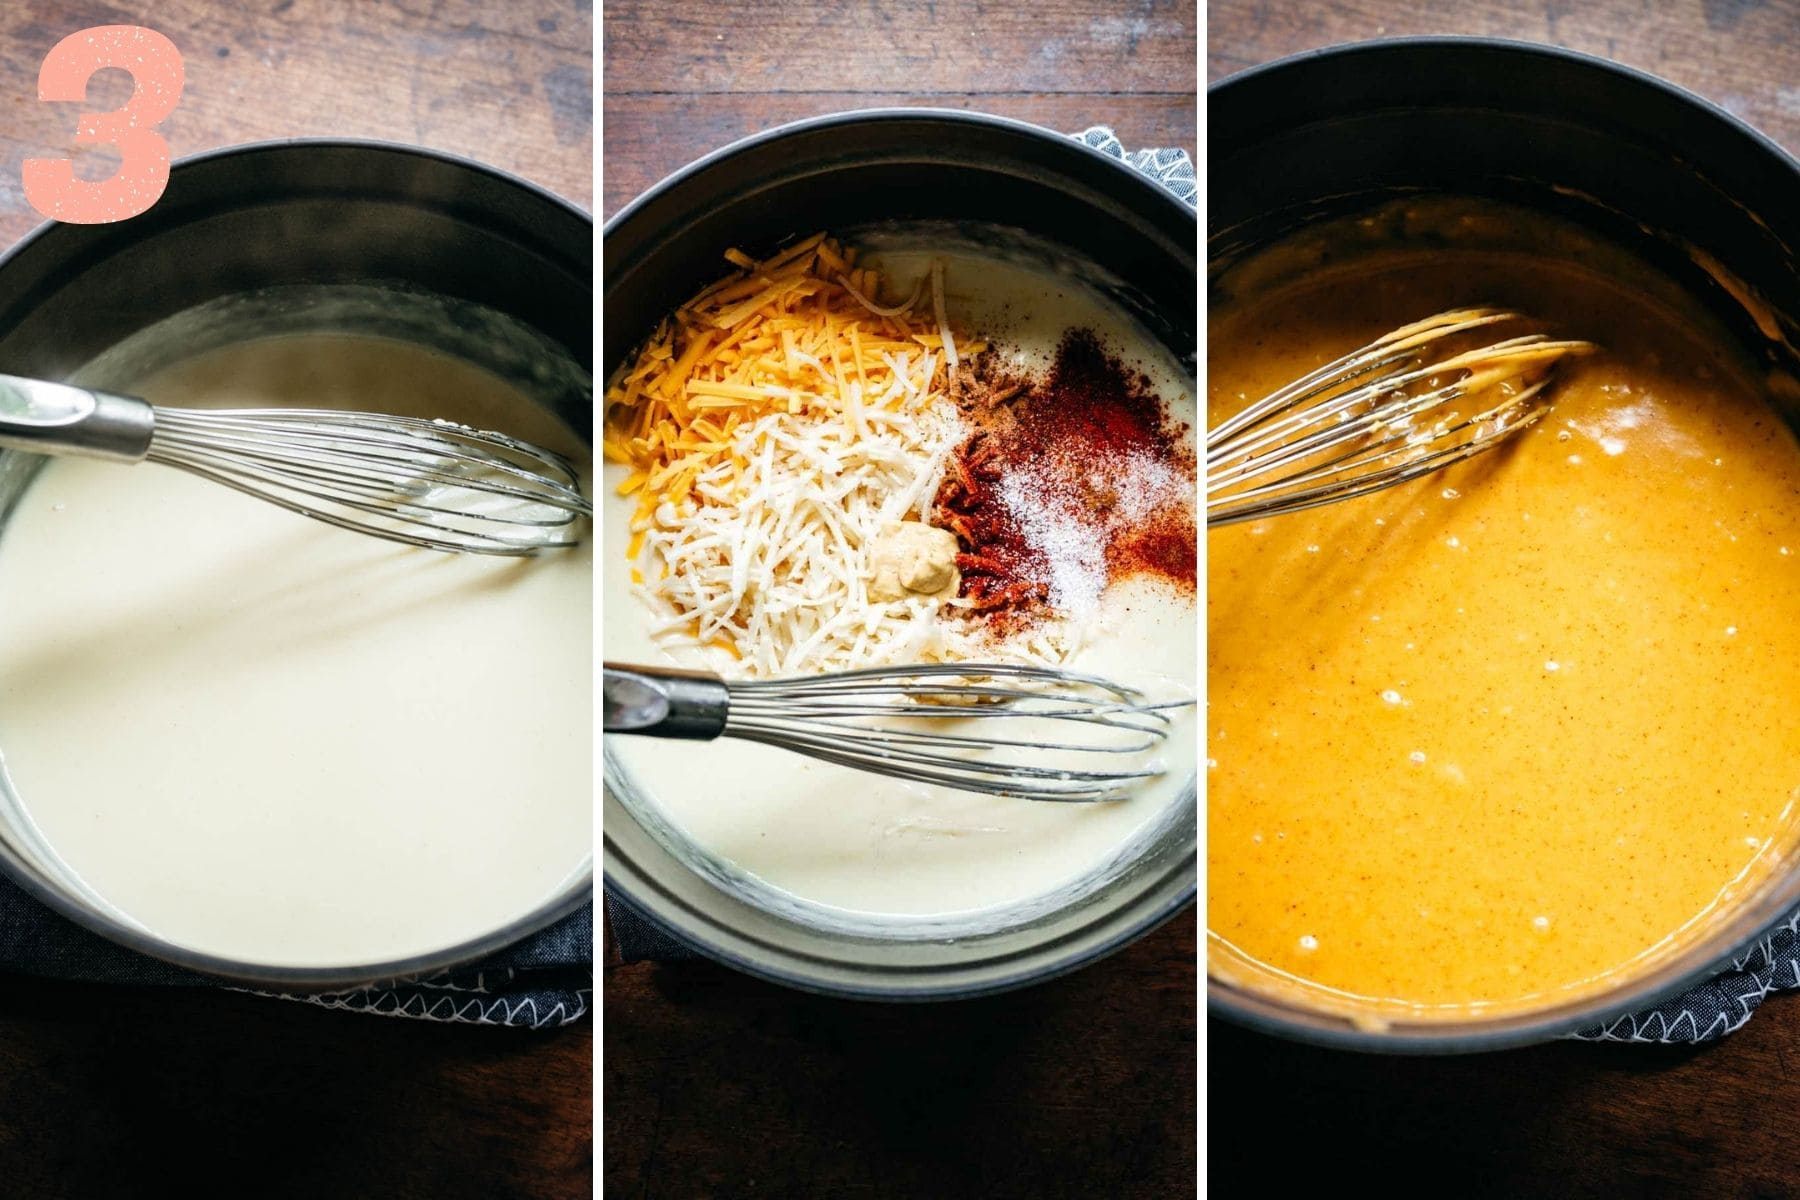 Three panel view of milk, then milk with spices, then milk with cheese melted in.